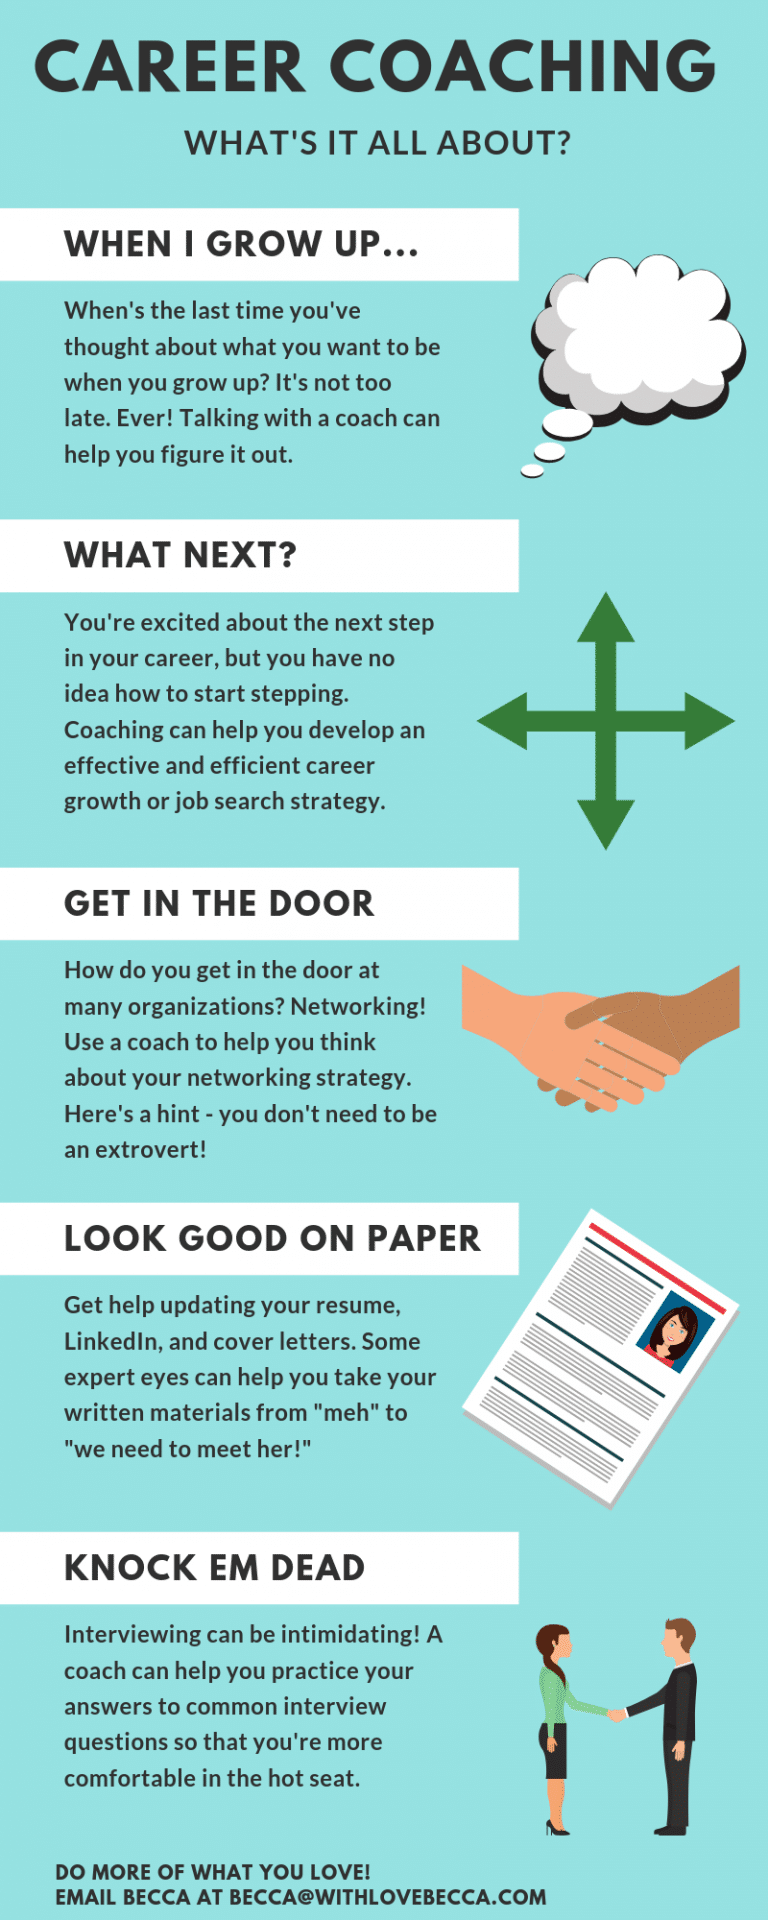 What is career coaching? How could a career coach help me? #careeradvice #careercoach #coaching